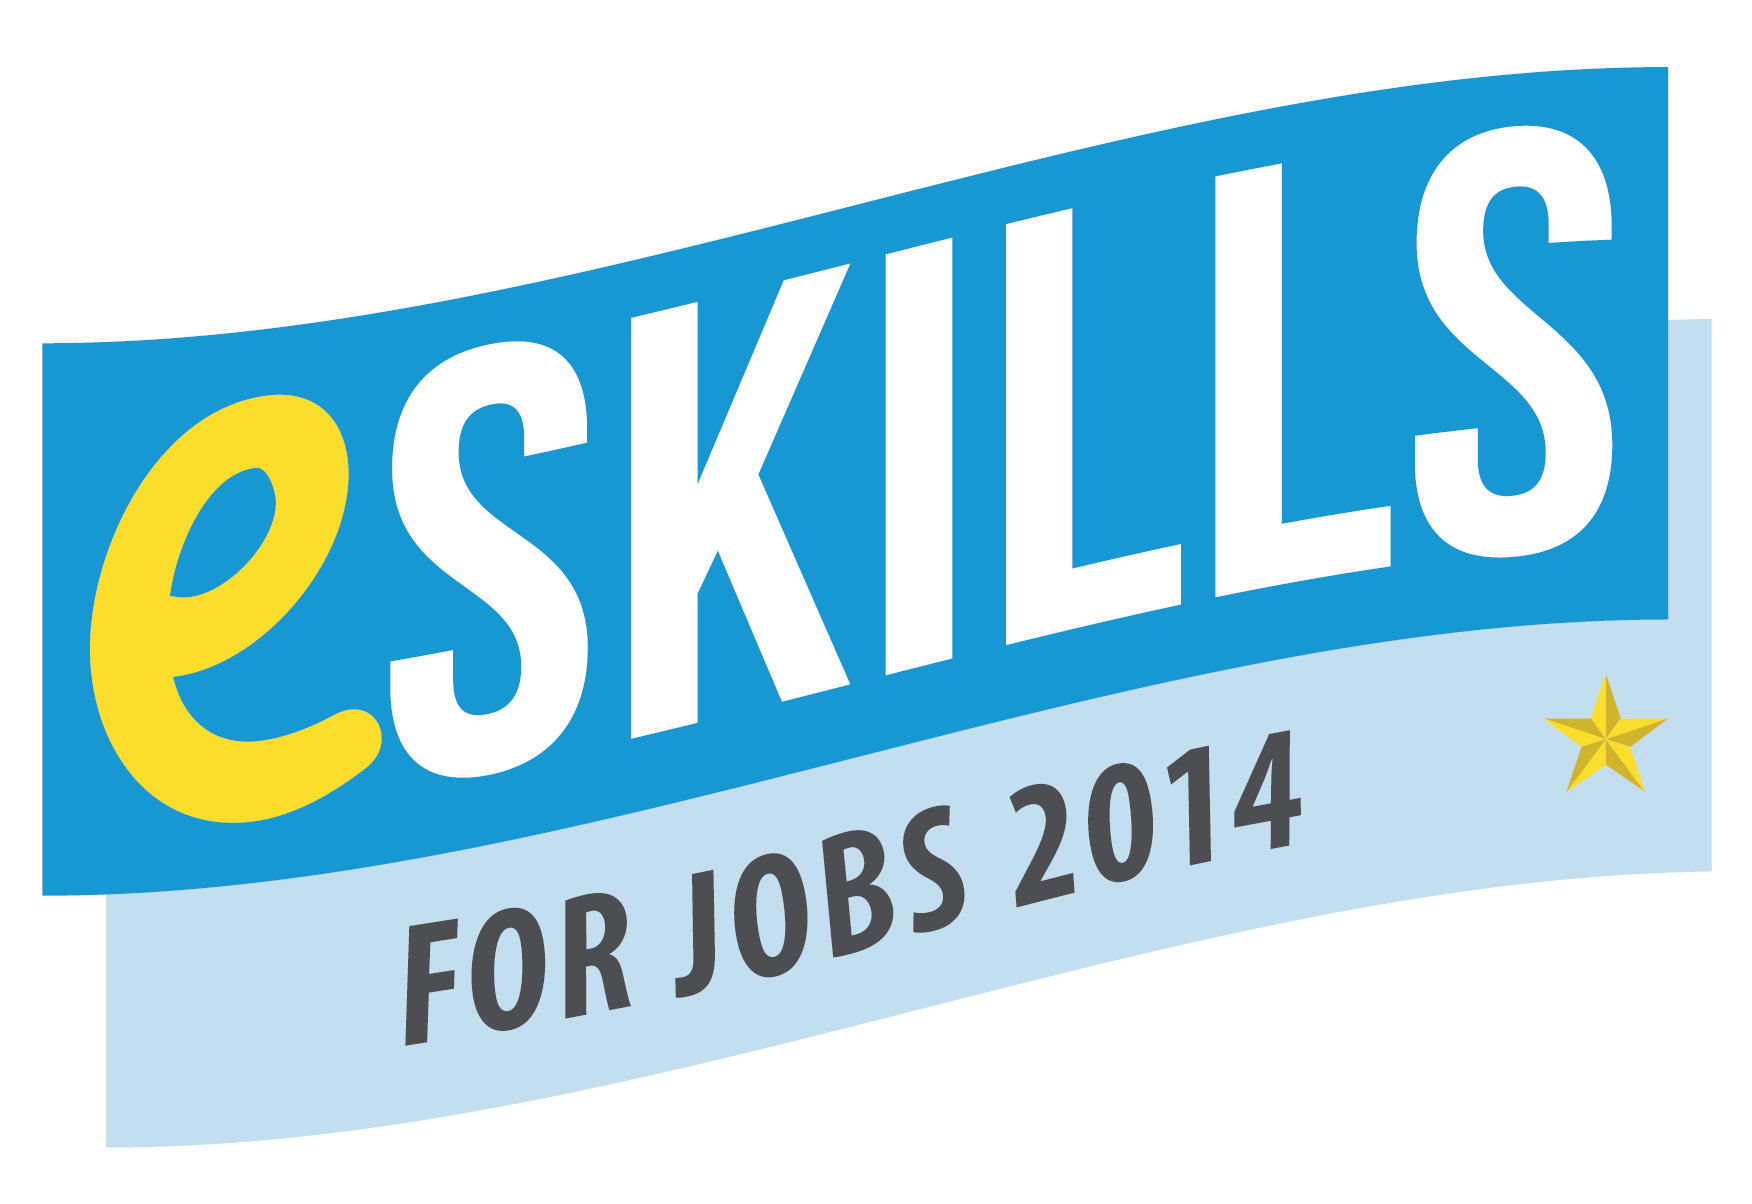 e-Skills forJos 2014: EU skills for Growth